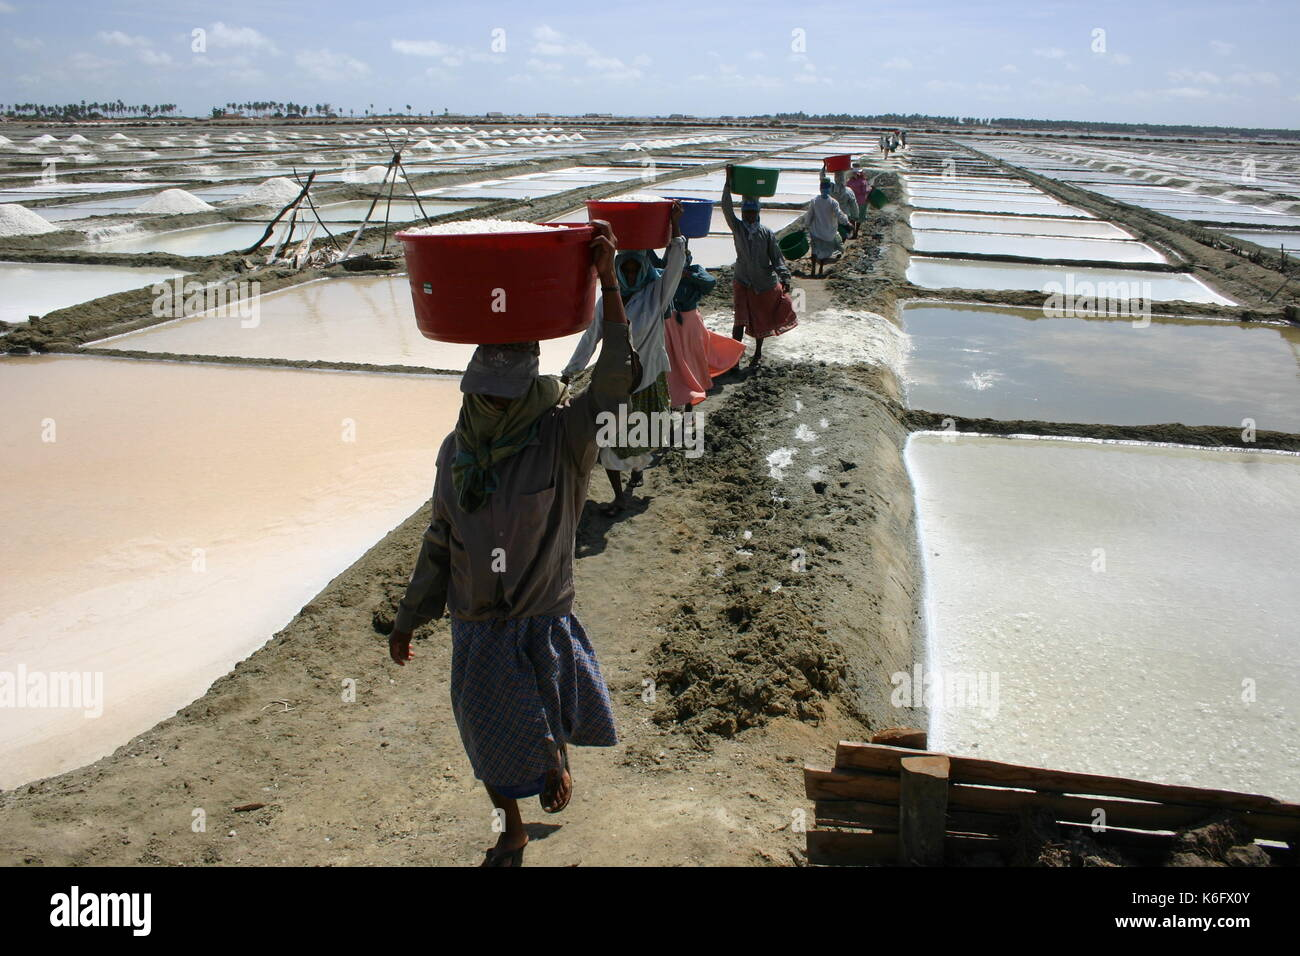 The enthusiastic salt harvesters of Puttlam dotted endless stretches of shallow glistening water - Stock Image